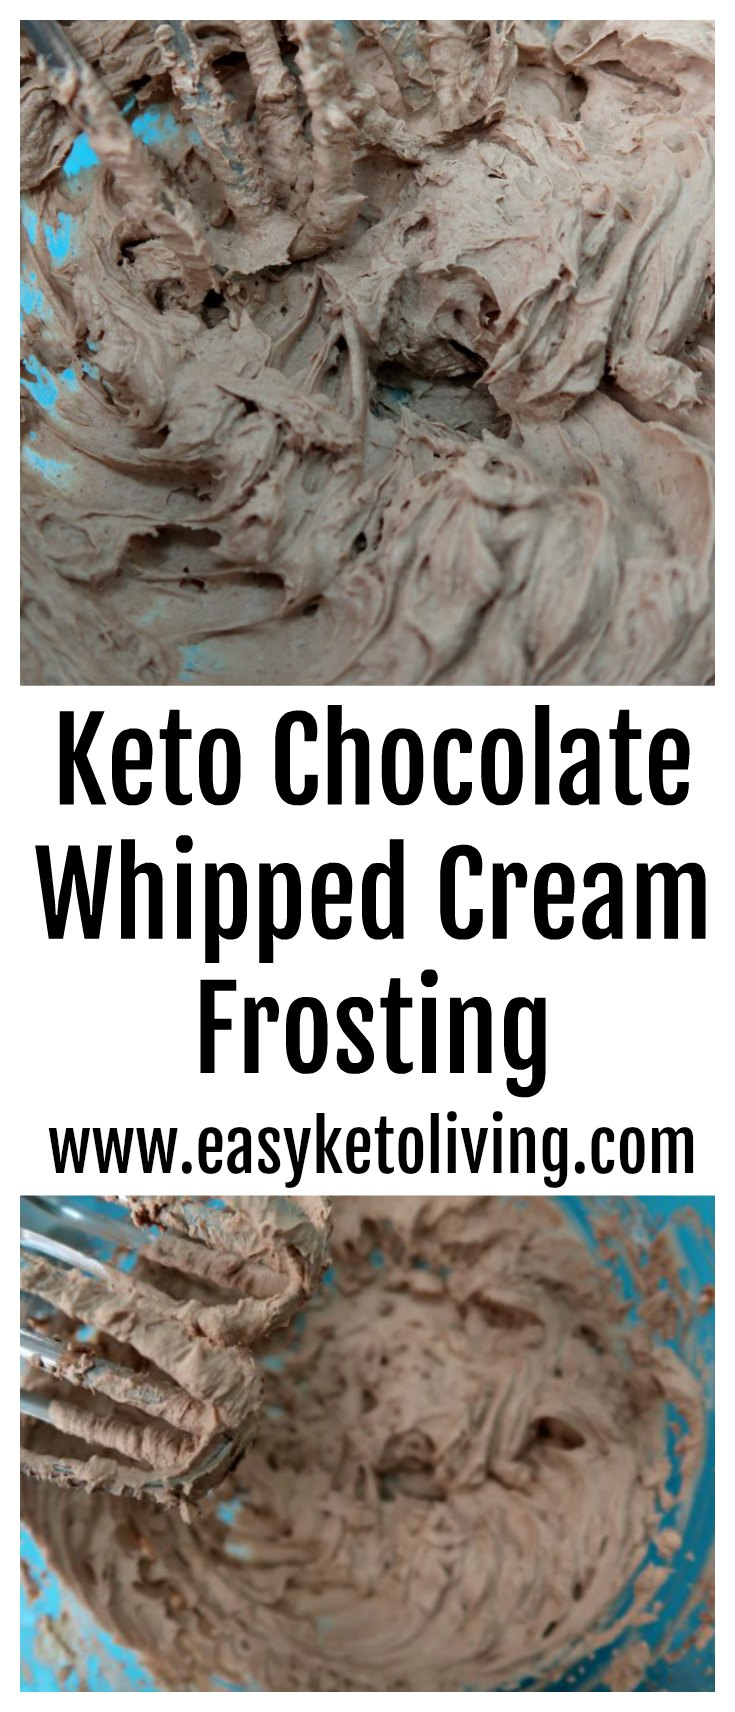 Keto Chocolate Whipped Cream Frosting Recipe – Easy Low Carb Homemade Chocolate Filling or Dessert which could also be enjoyed as a chocolate mousse!